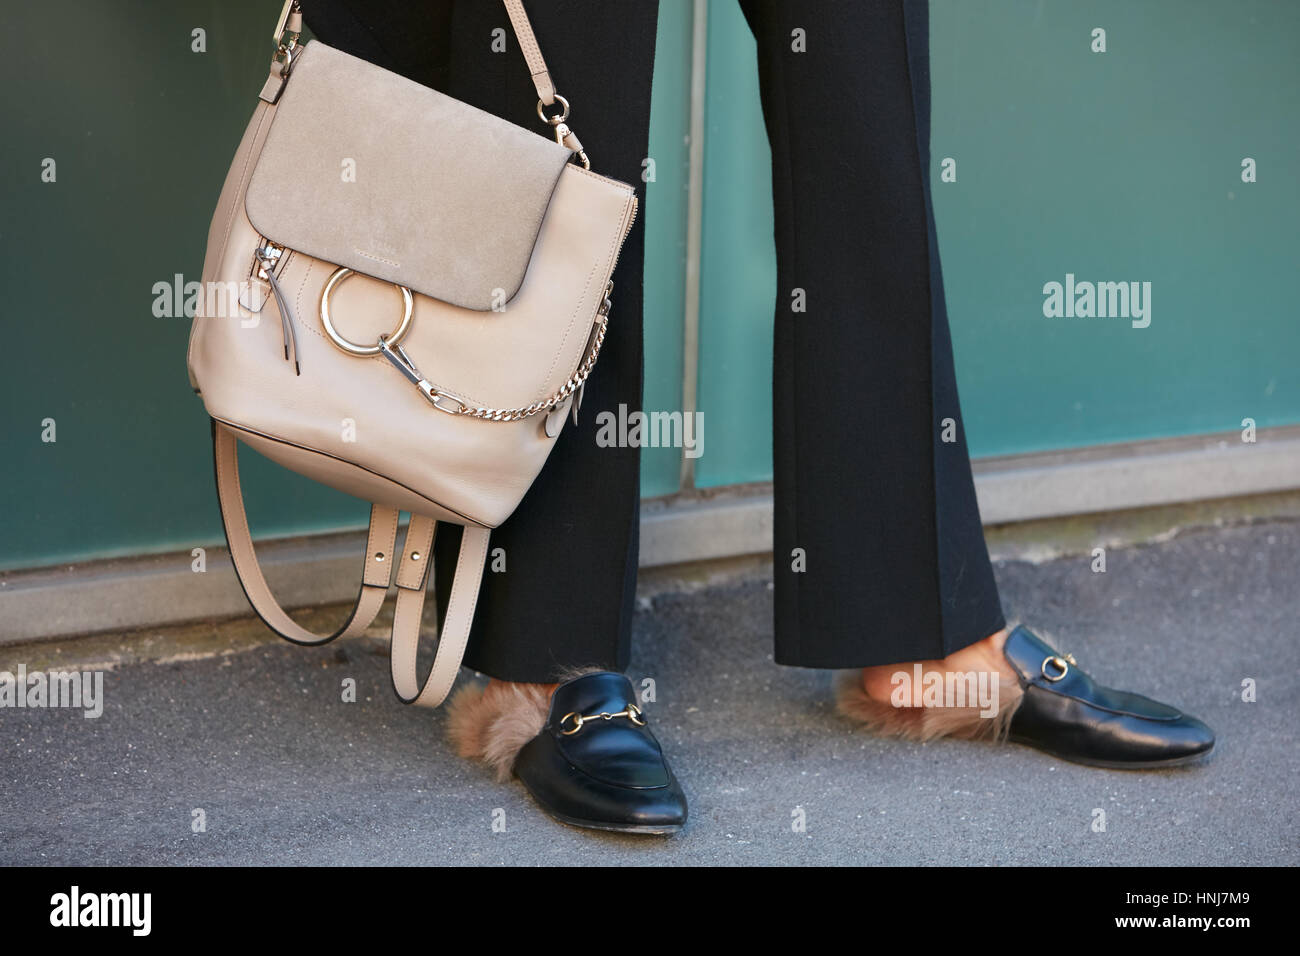 gucci bags and shoes. stock photo - woman with beige leather bag and gucci shoes fur before etro fashion show, milan week street style on january 16, 2017 bags